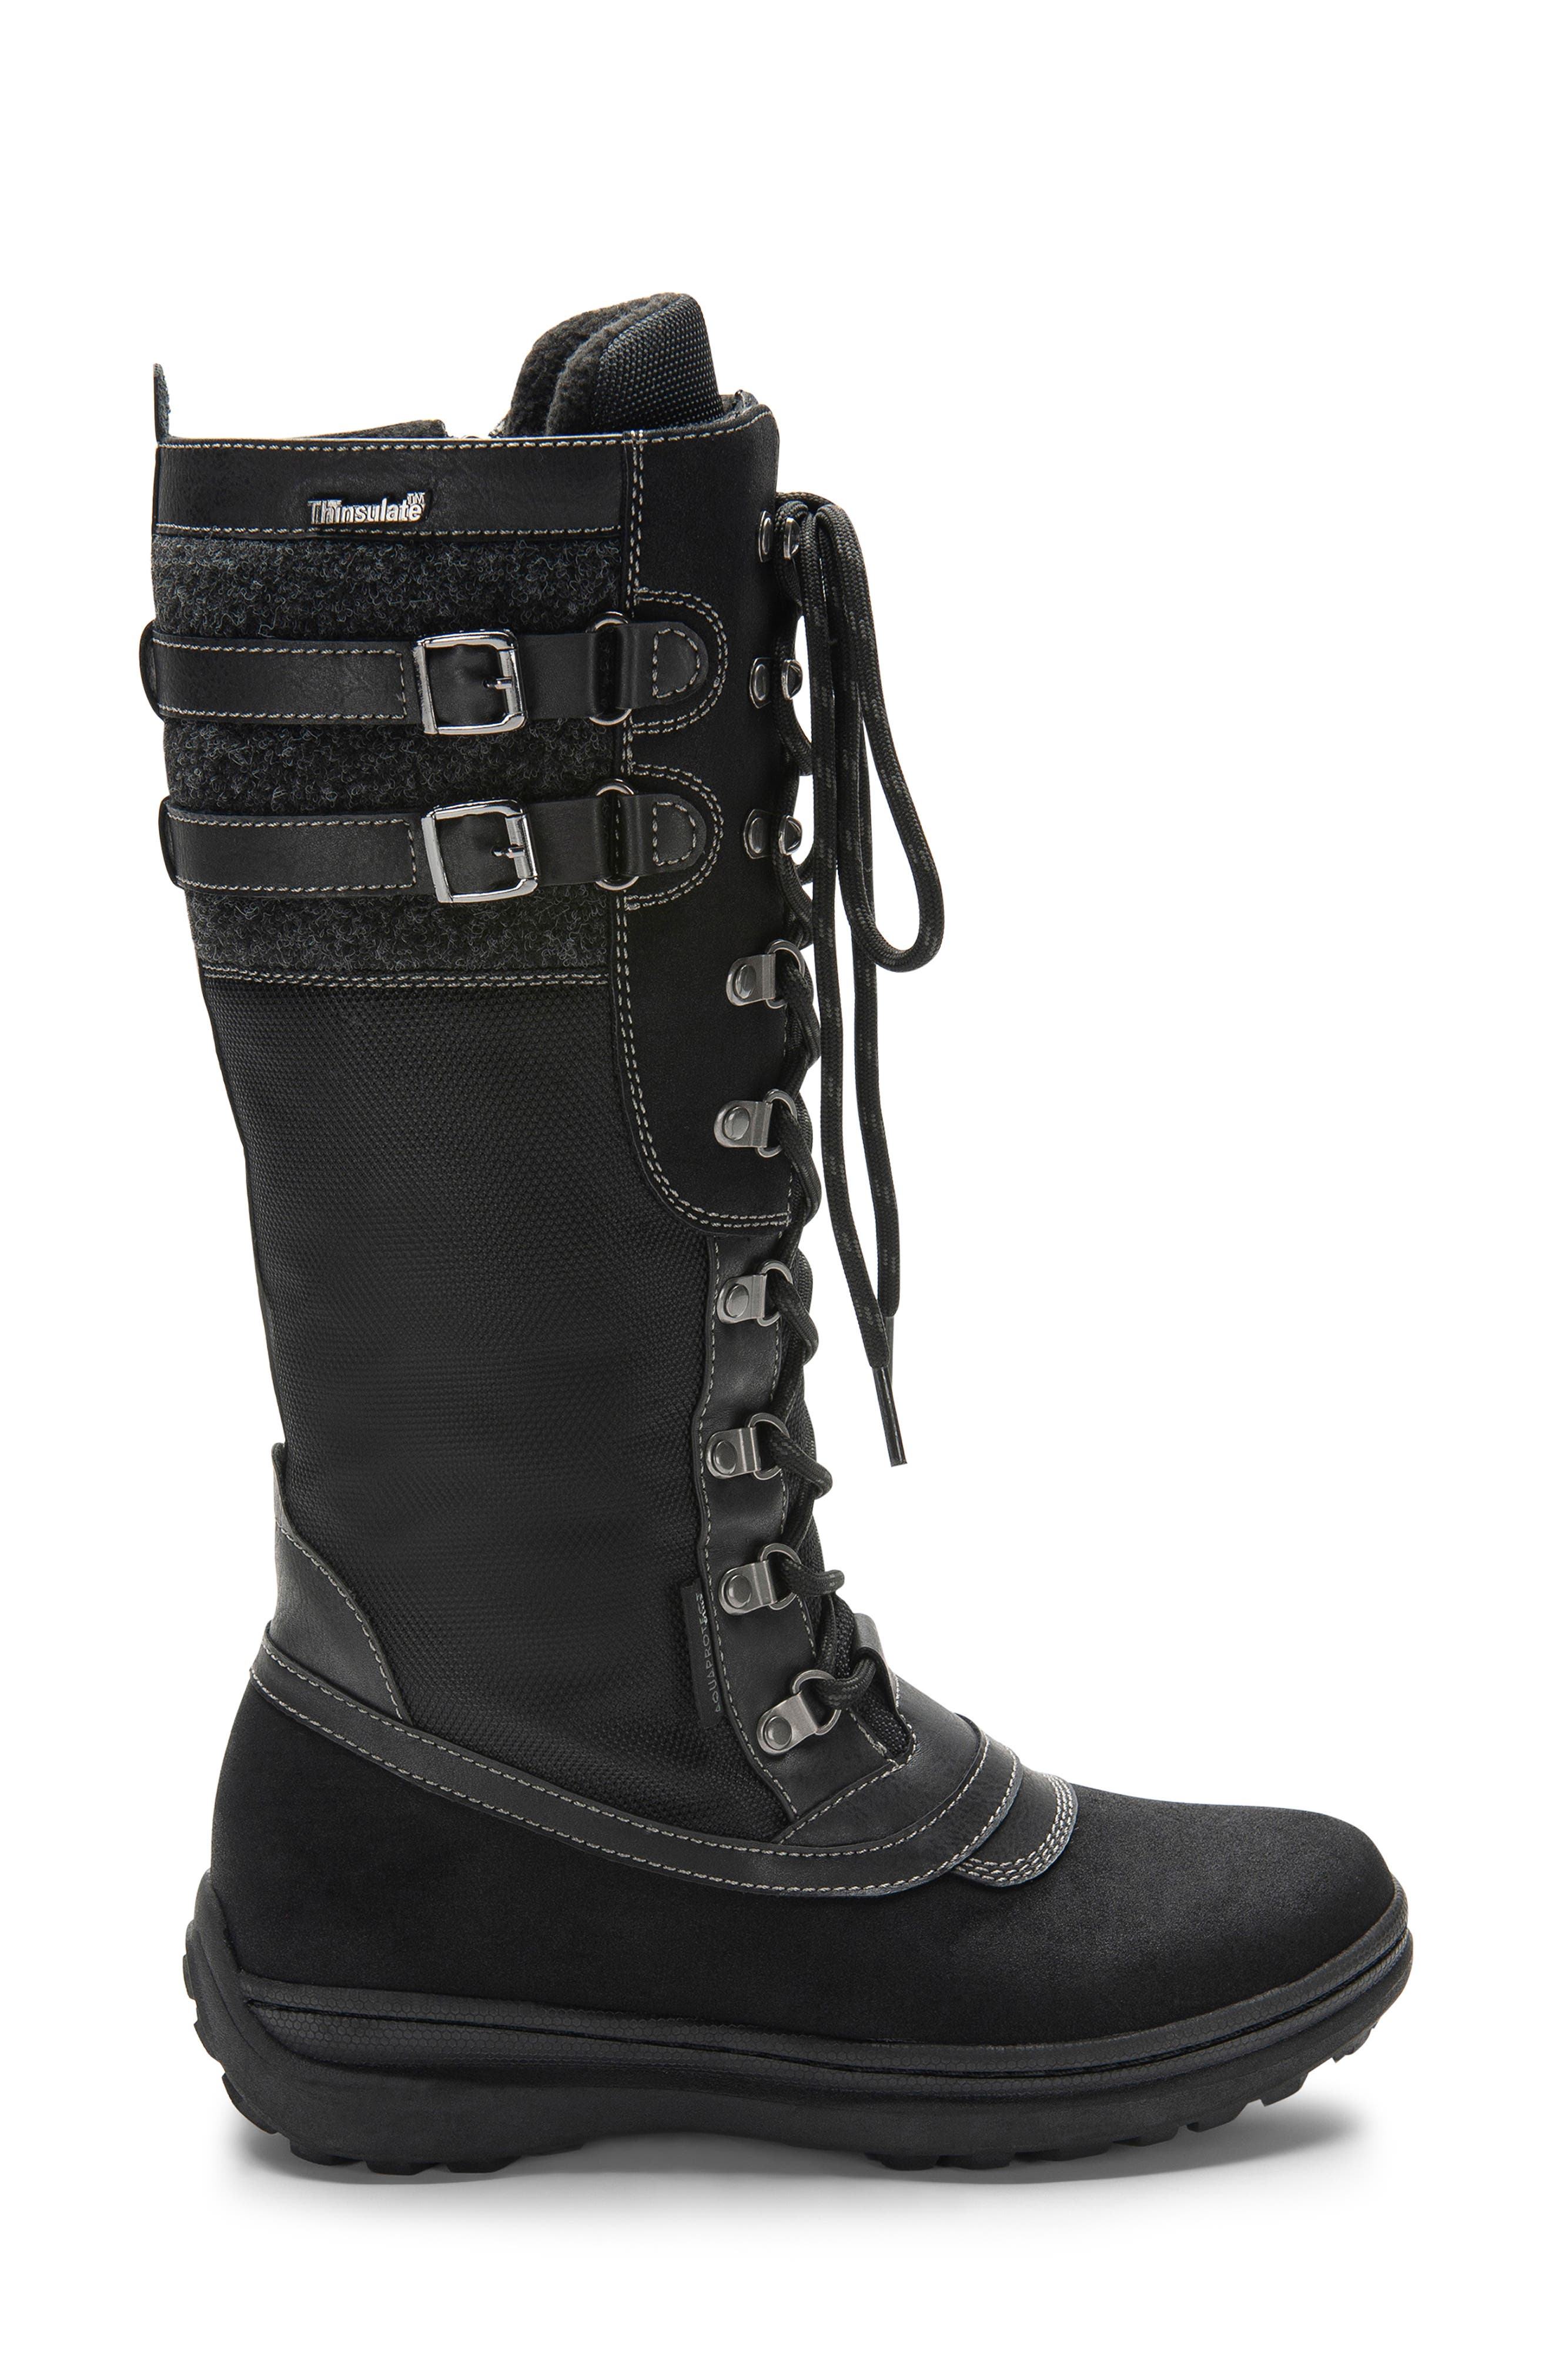 India Waterproof Snow Boot,                             Alternate thumbnail 3, color,                             BLACK LEATHER